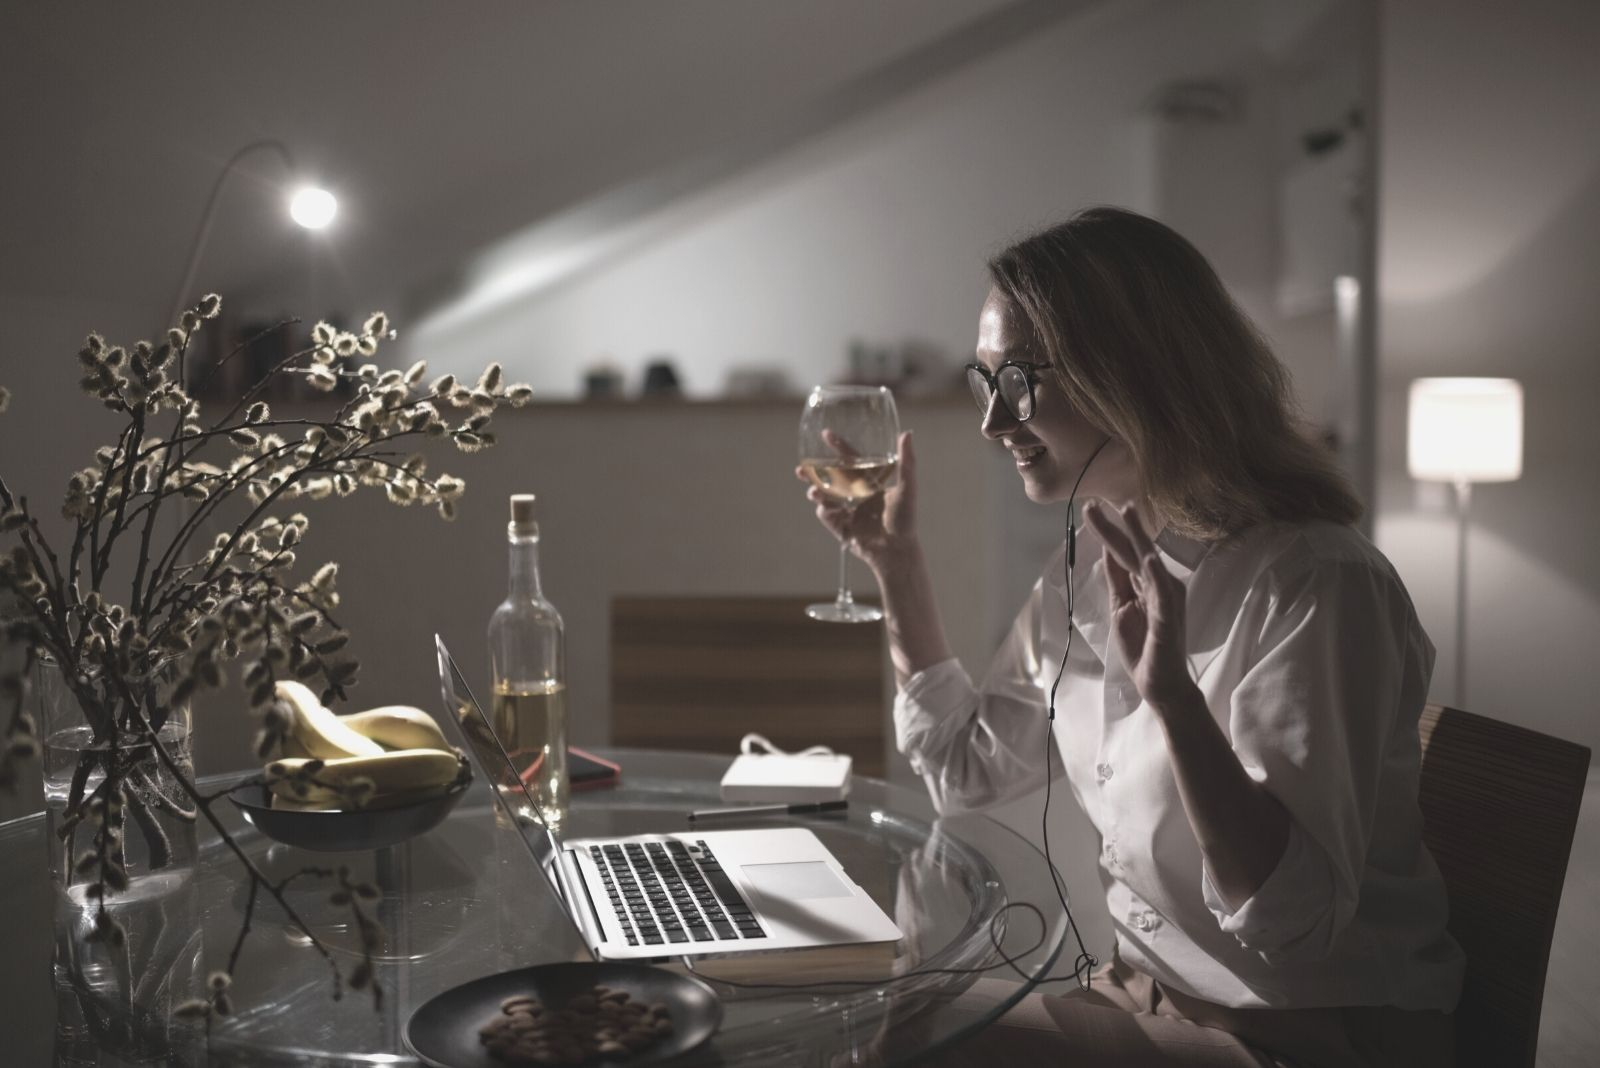 woman having a drink wine while chatting on the laptop during the night